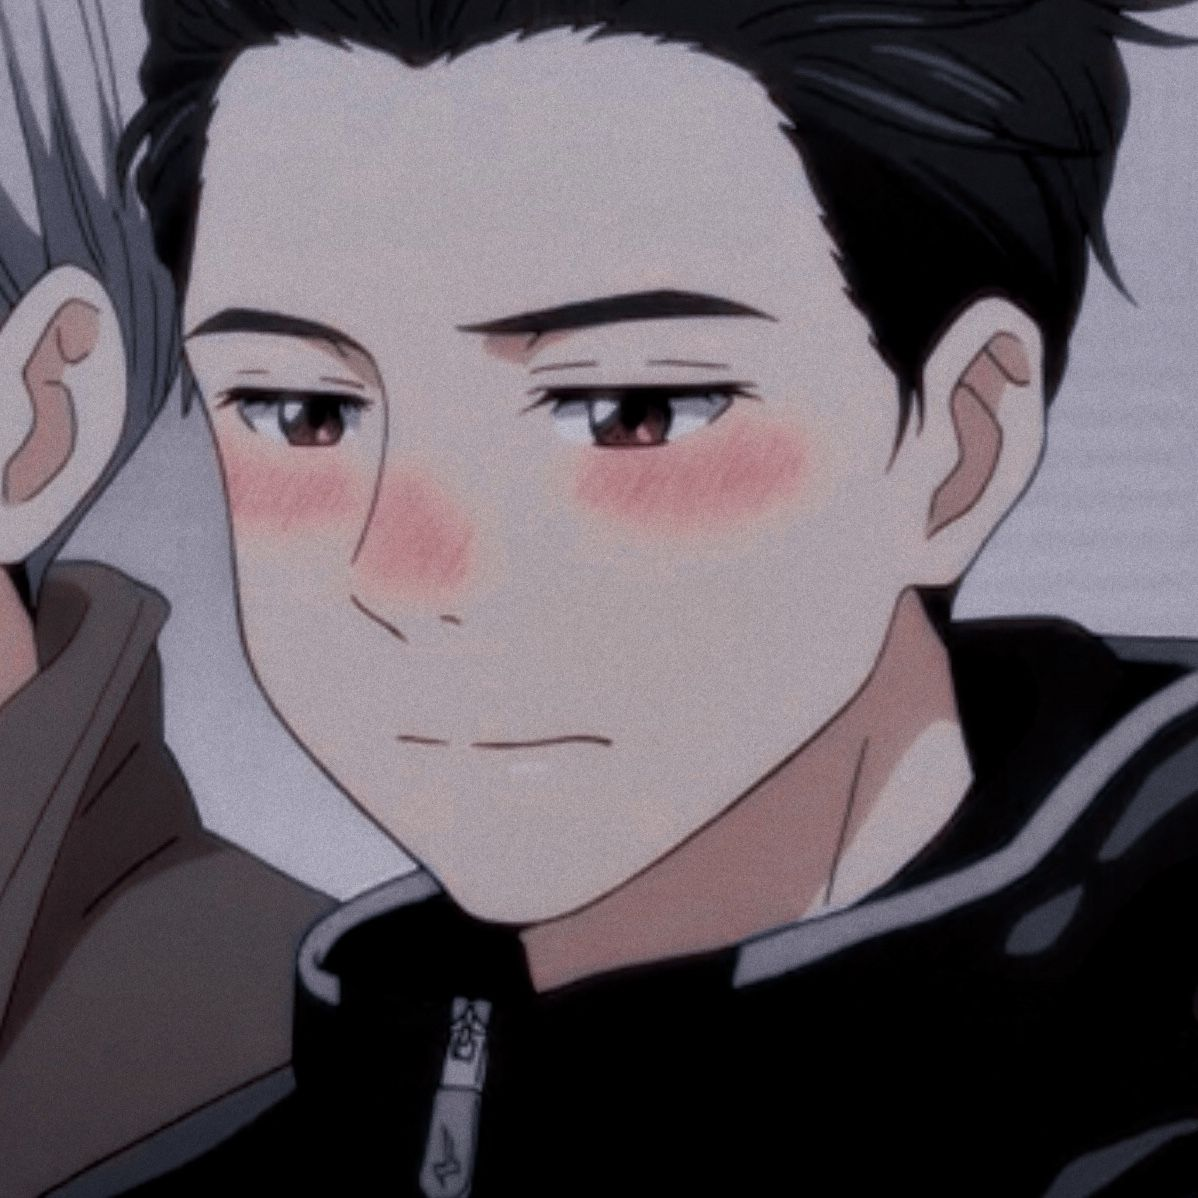 𝑦𝑢𝑟𝑖 𝑘𝑎𝑡𝑠𝑢𝑘𝑖 𝙞𝙘𝙤𝙣 Yuri Katsuki Yuri On Ice Aesthetic Anime